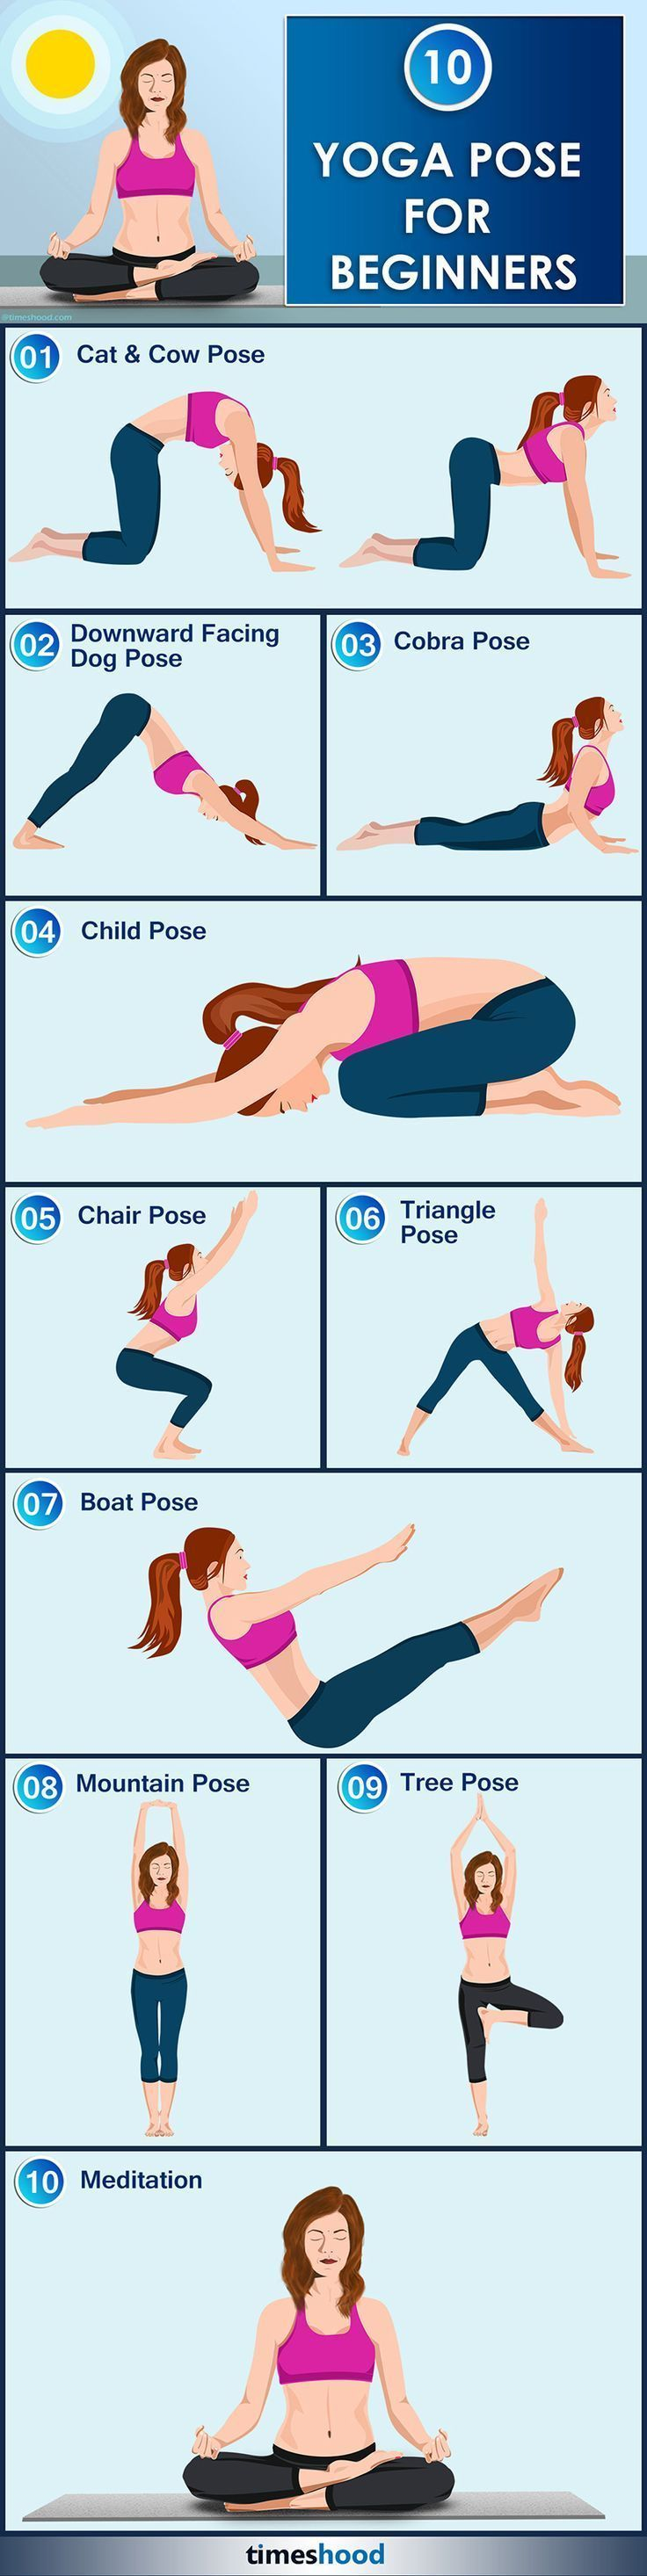 Yoga For Beginners: 10 Easy Yoga Position for beginners - Easy yoga pose for beginners to let them start effortlessly. Learn here how to start simple yoga pose initially. Know yoga benefits while performing. #YogaBenefits